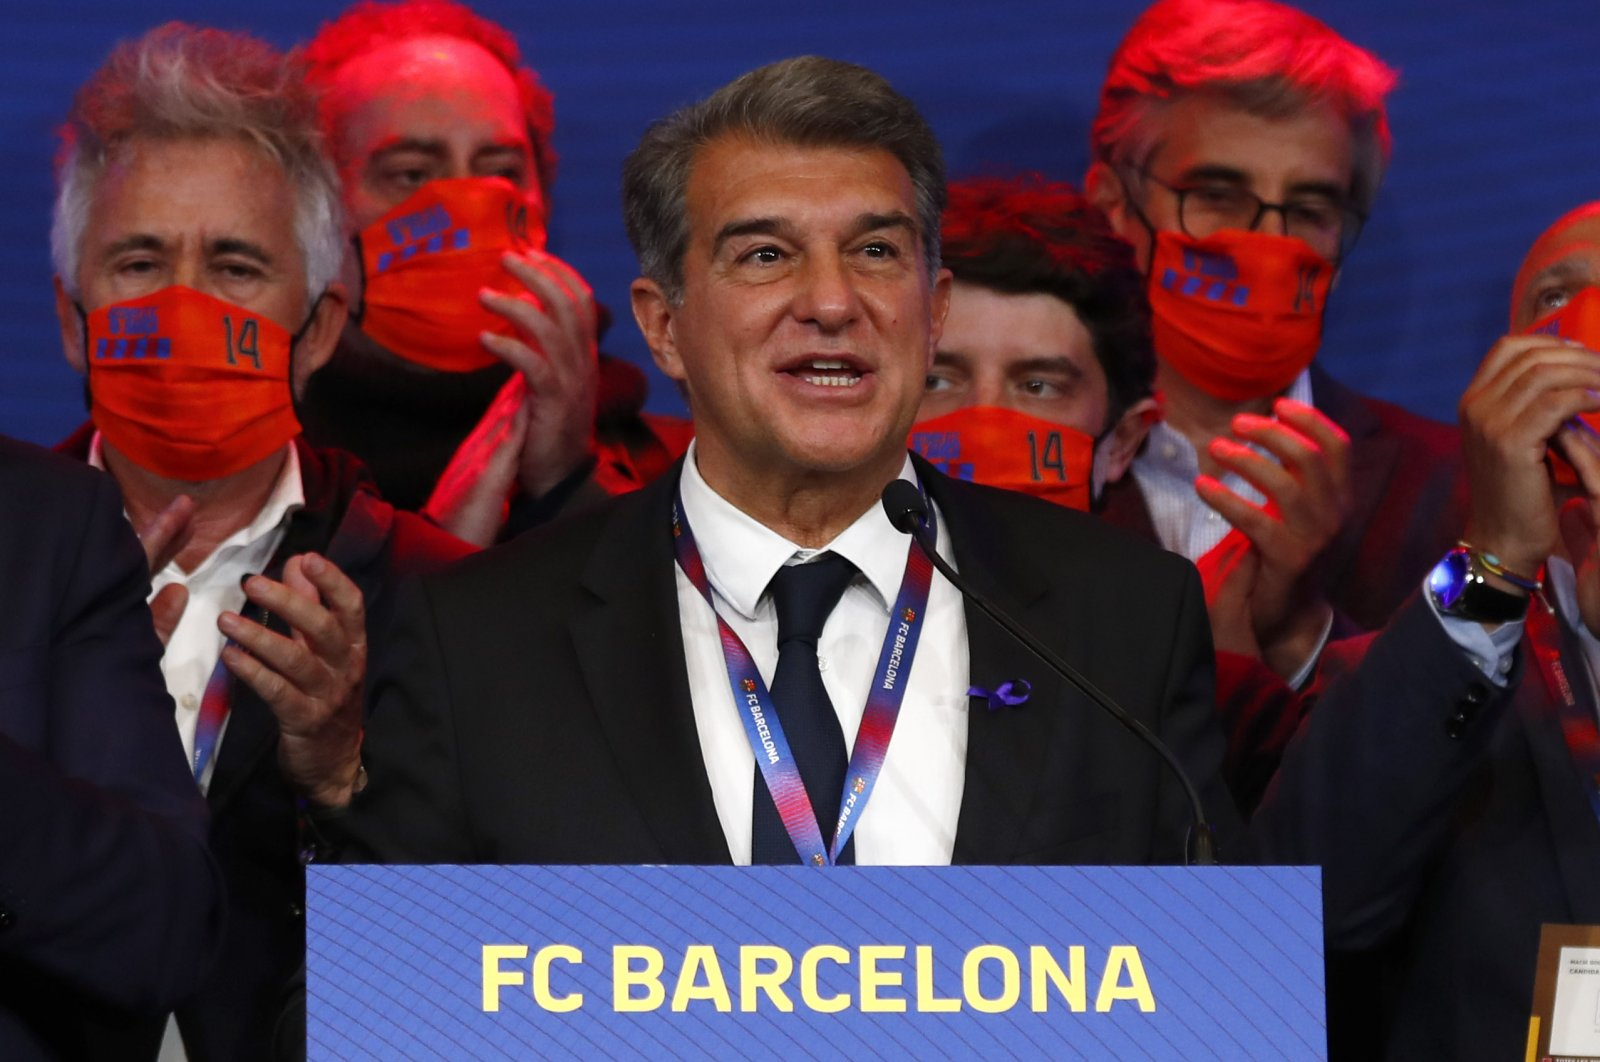 Joan Laporta celebrates his victory after elections at the Camp Nou stadium in Barcelona, Spain, March 7, 2021 (AP Photo)